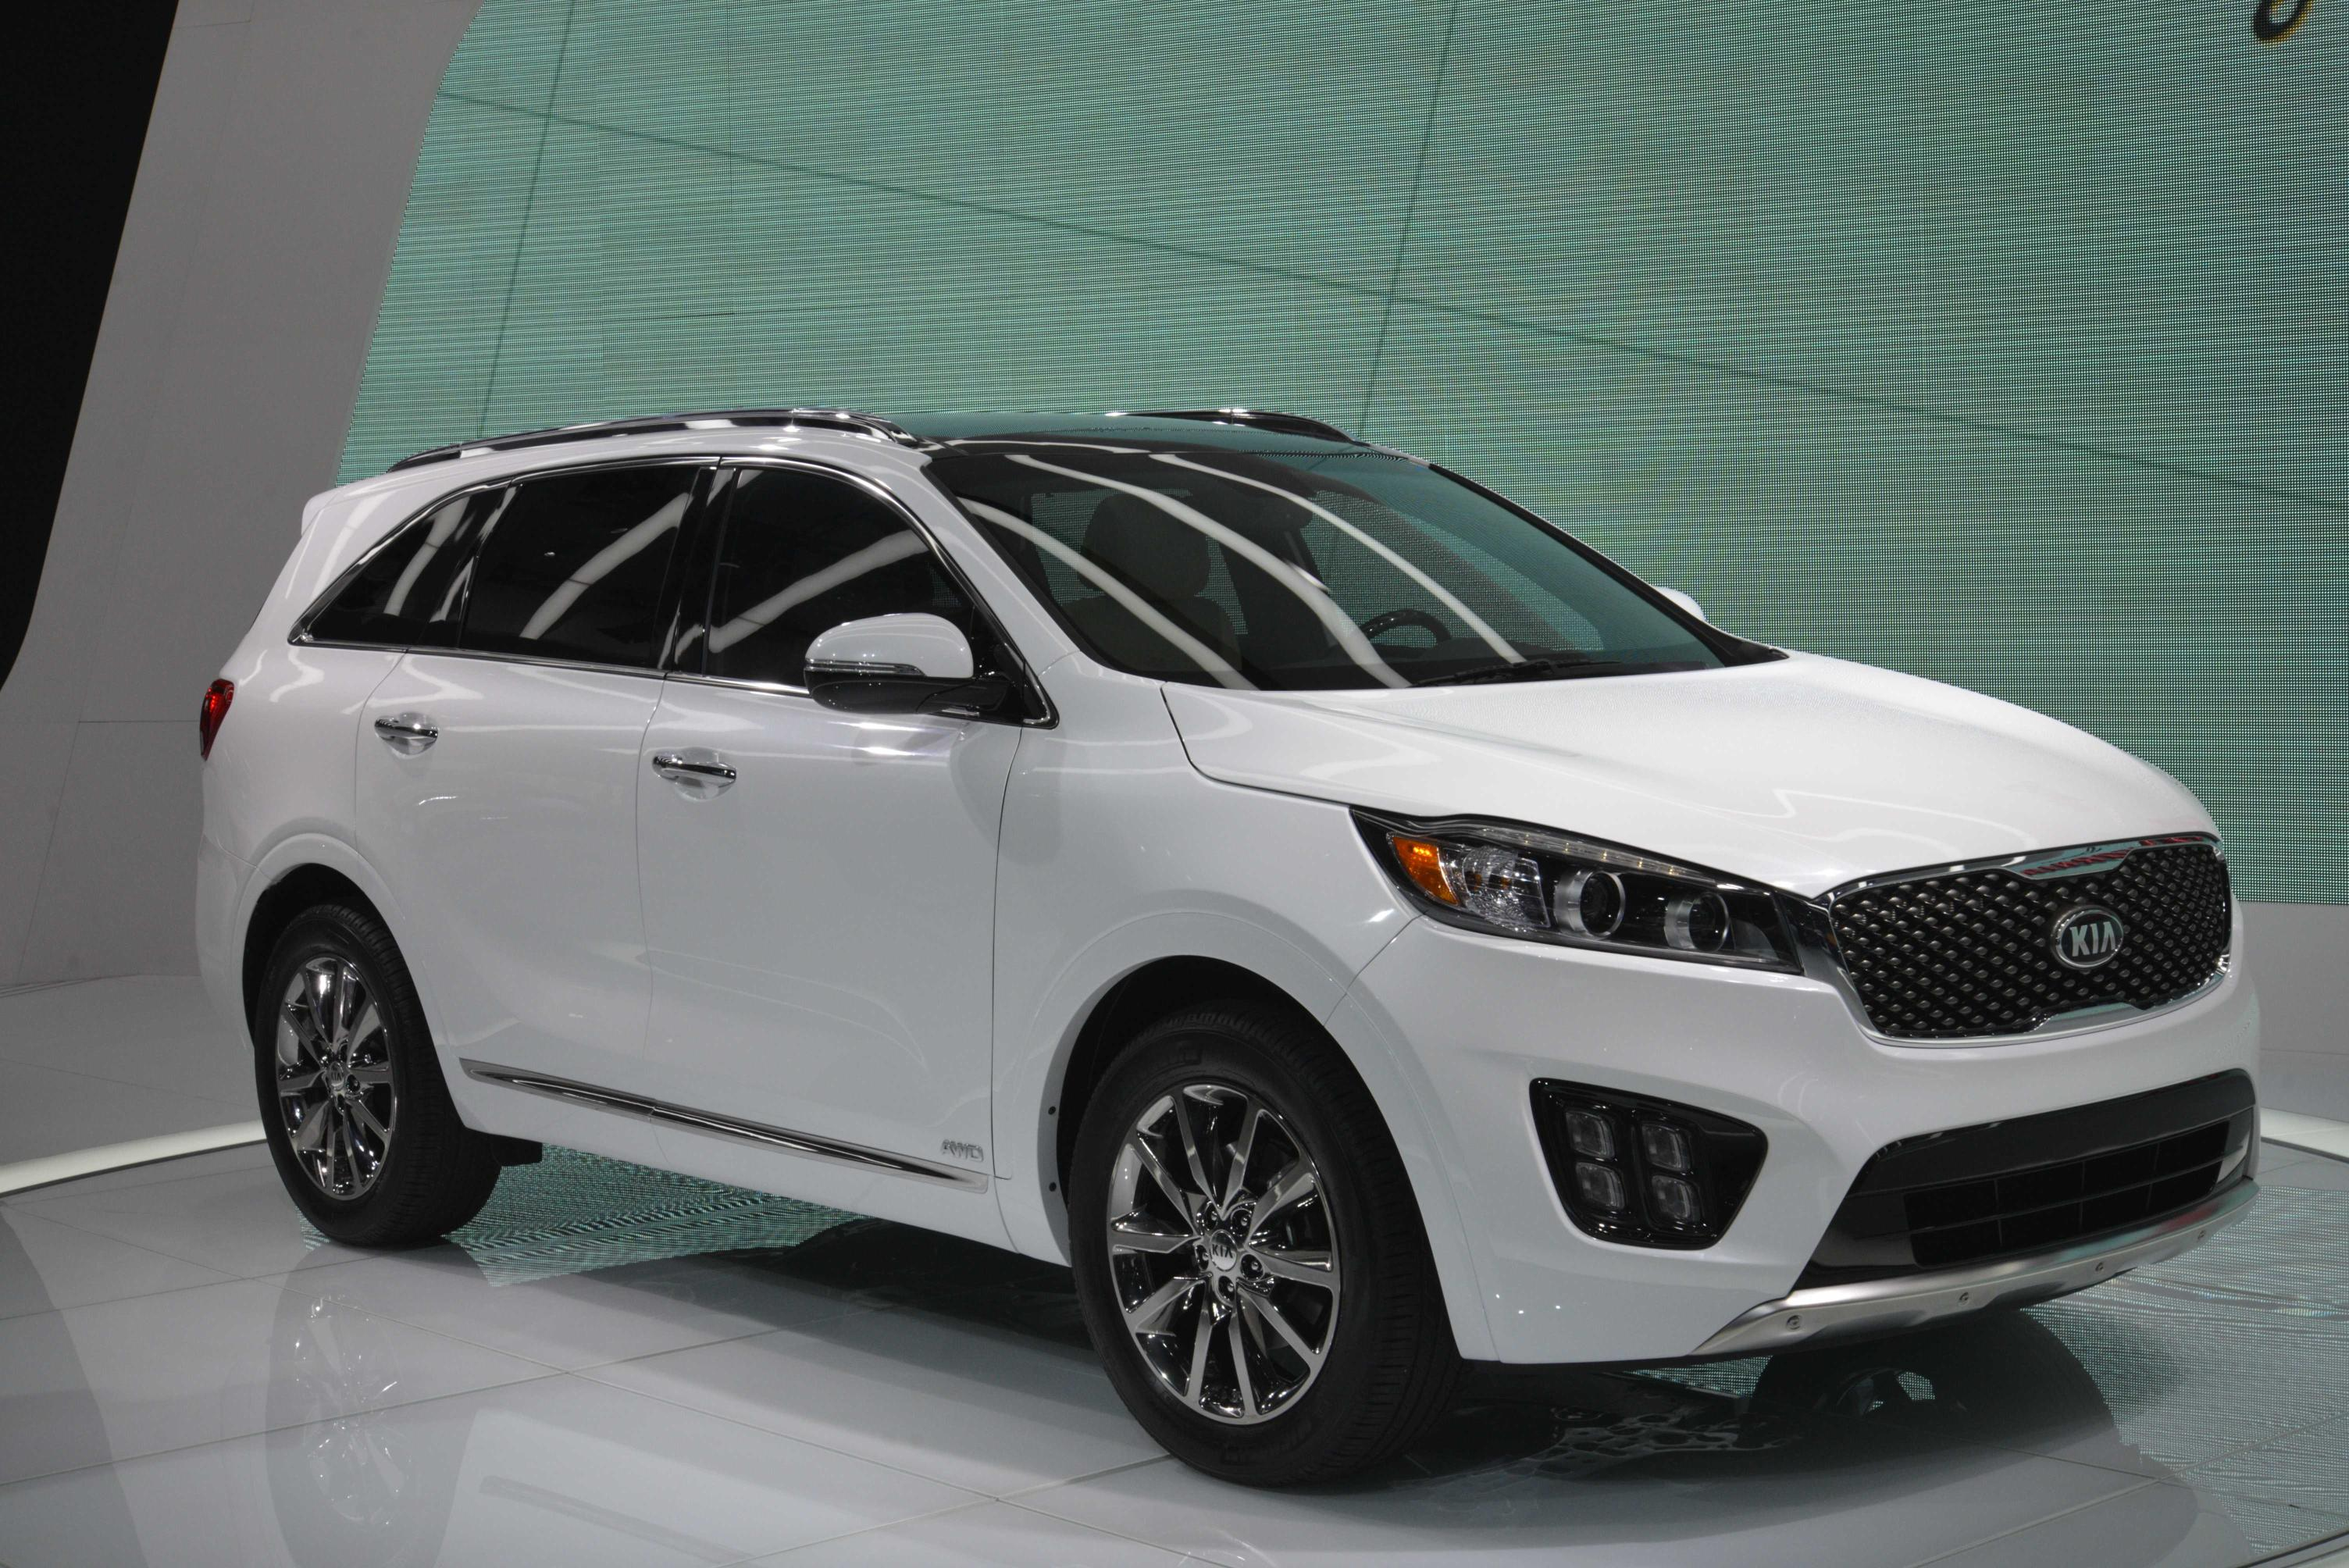 auto newest kia driving suvs trends design news angeles the foretells suvcrossover future los of latest sportage